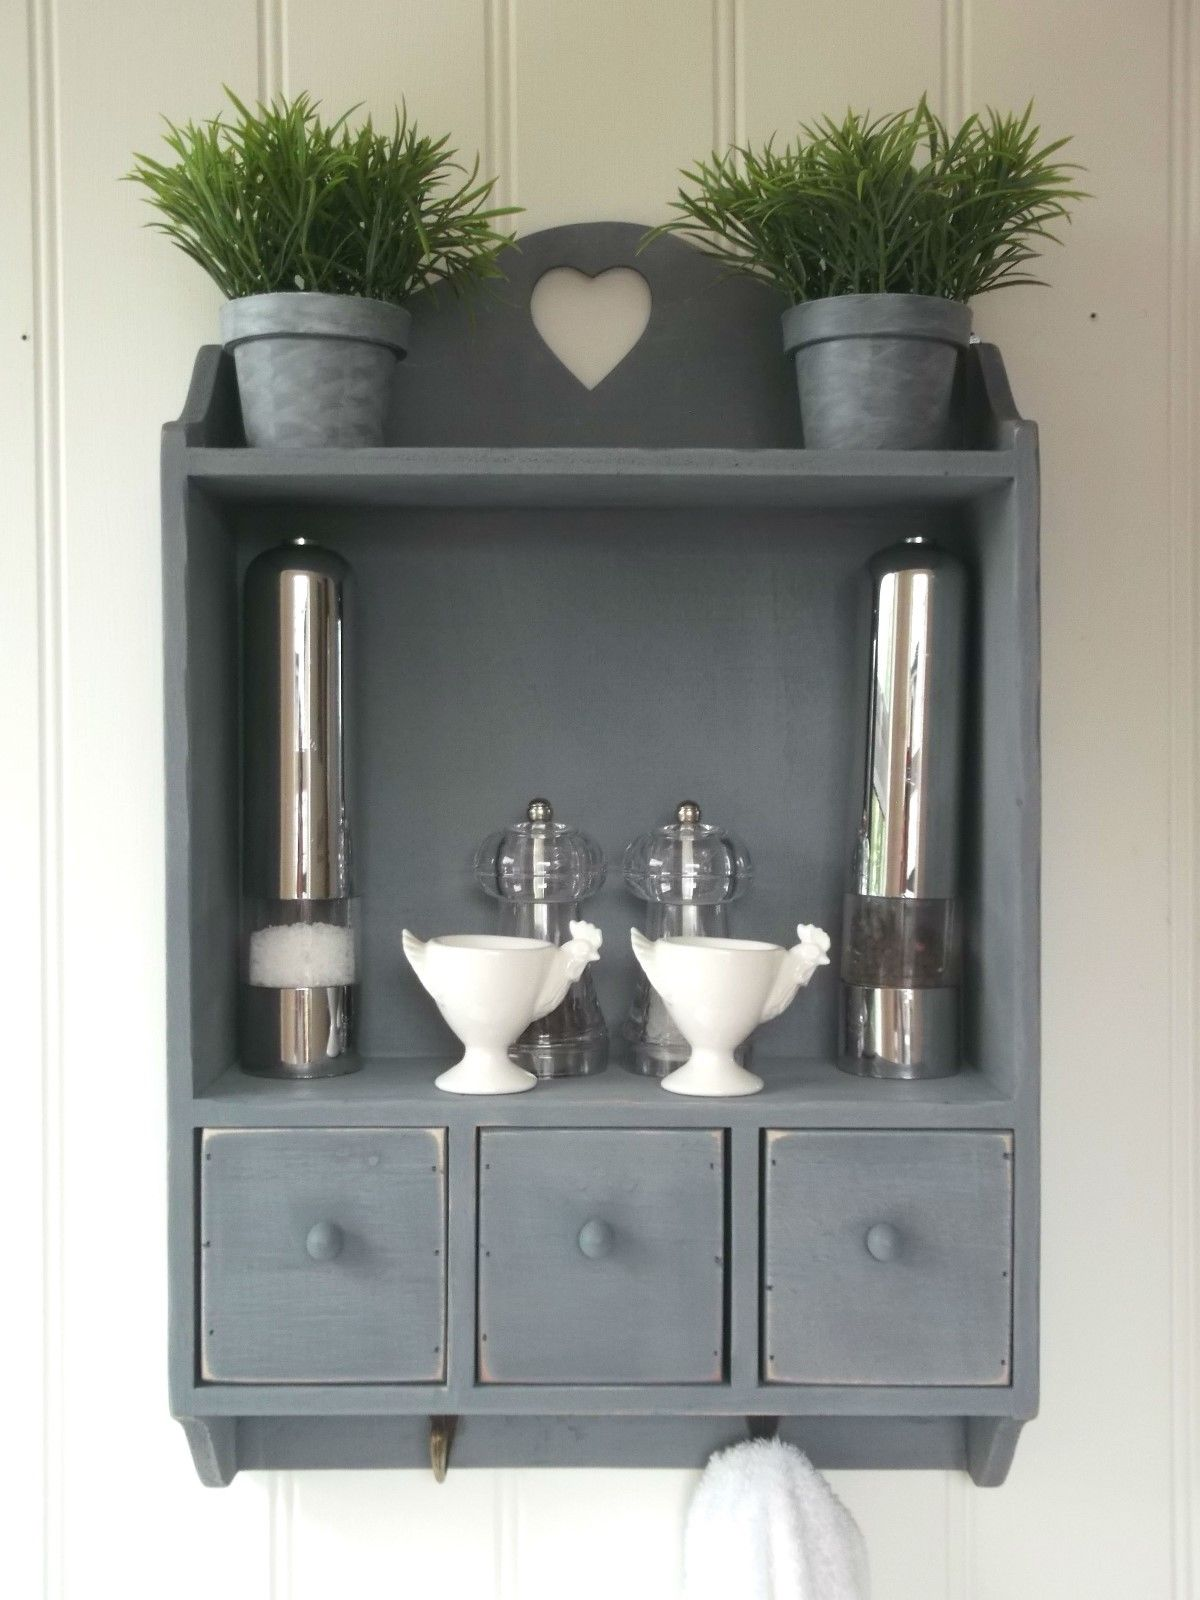 Shabby chic wall unit shelf storage cupboard cabinet for Kitchen cupboard wall unit